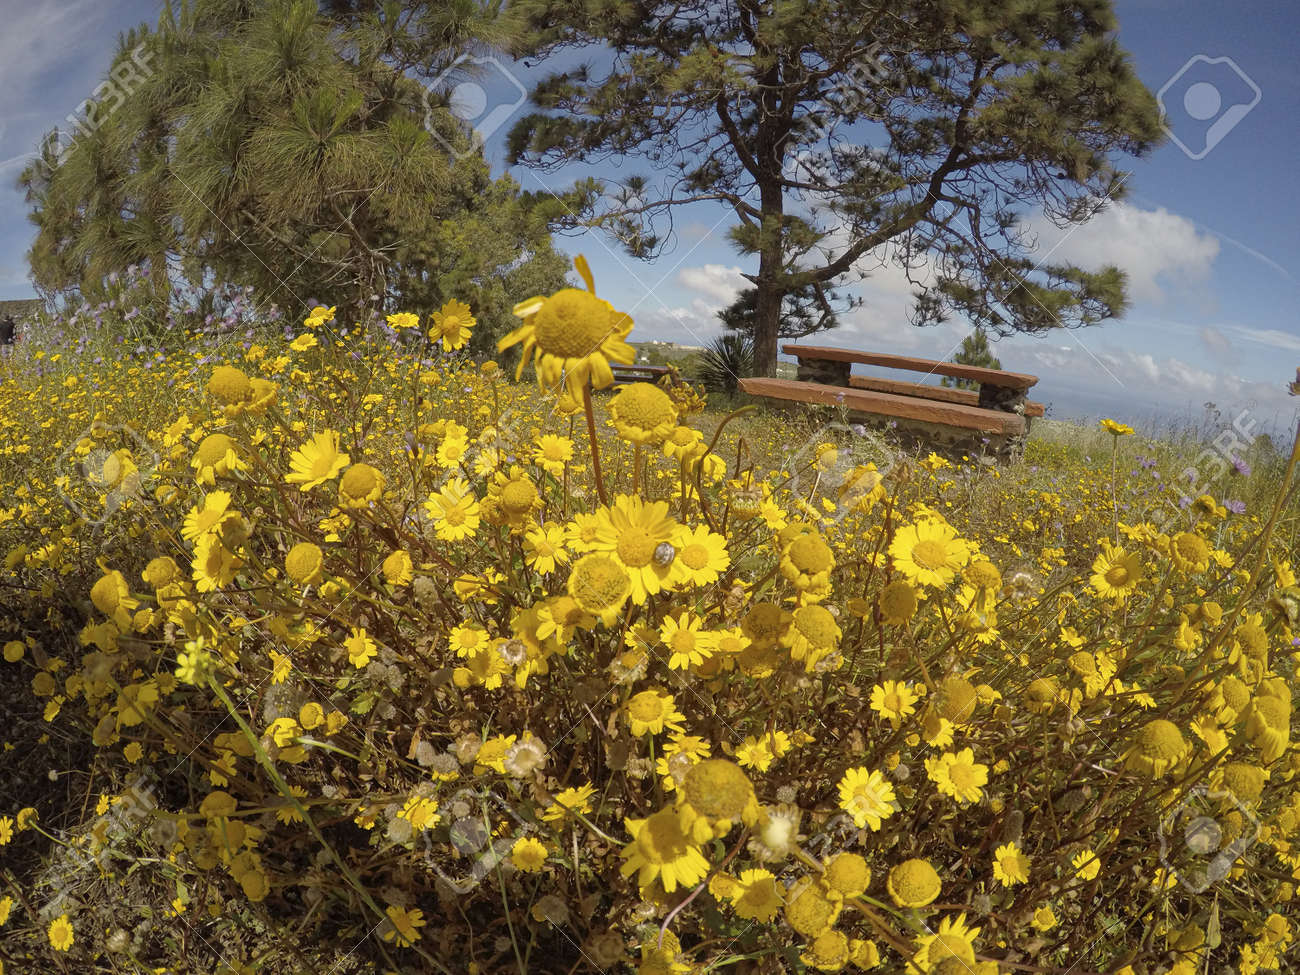 yellow field of wildflowers with a wooden bench in the background and blue sky. - 165900315